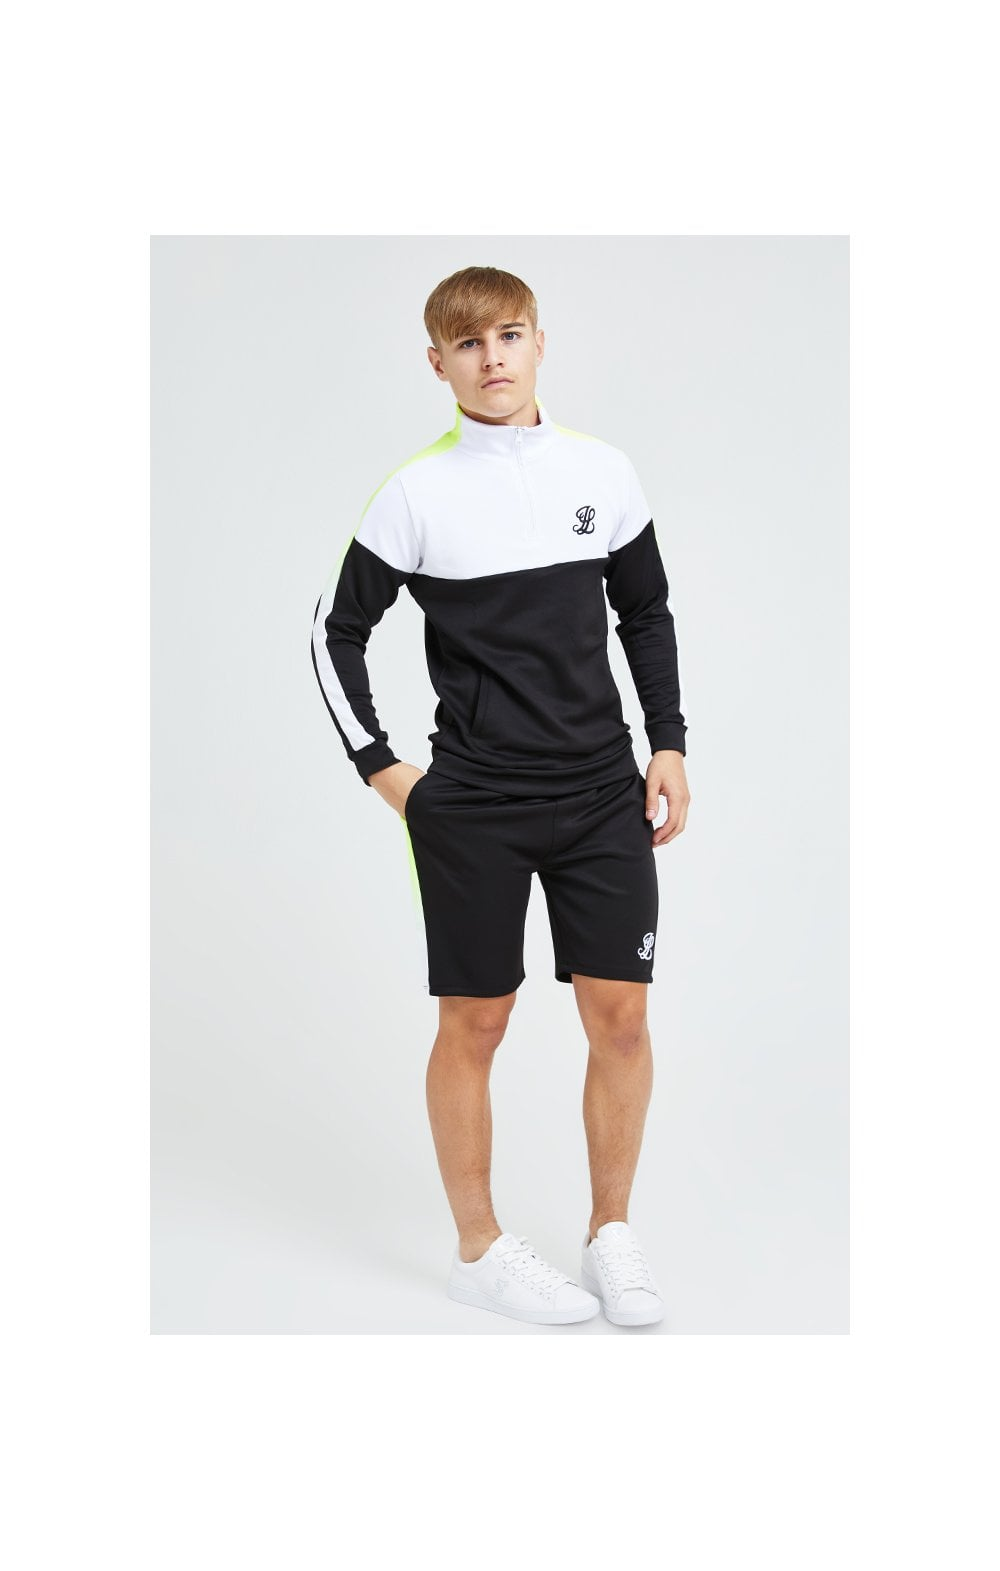 Illusive London Fade Funnel Neck Hoodie - Black,White & Neon Yellow (7)